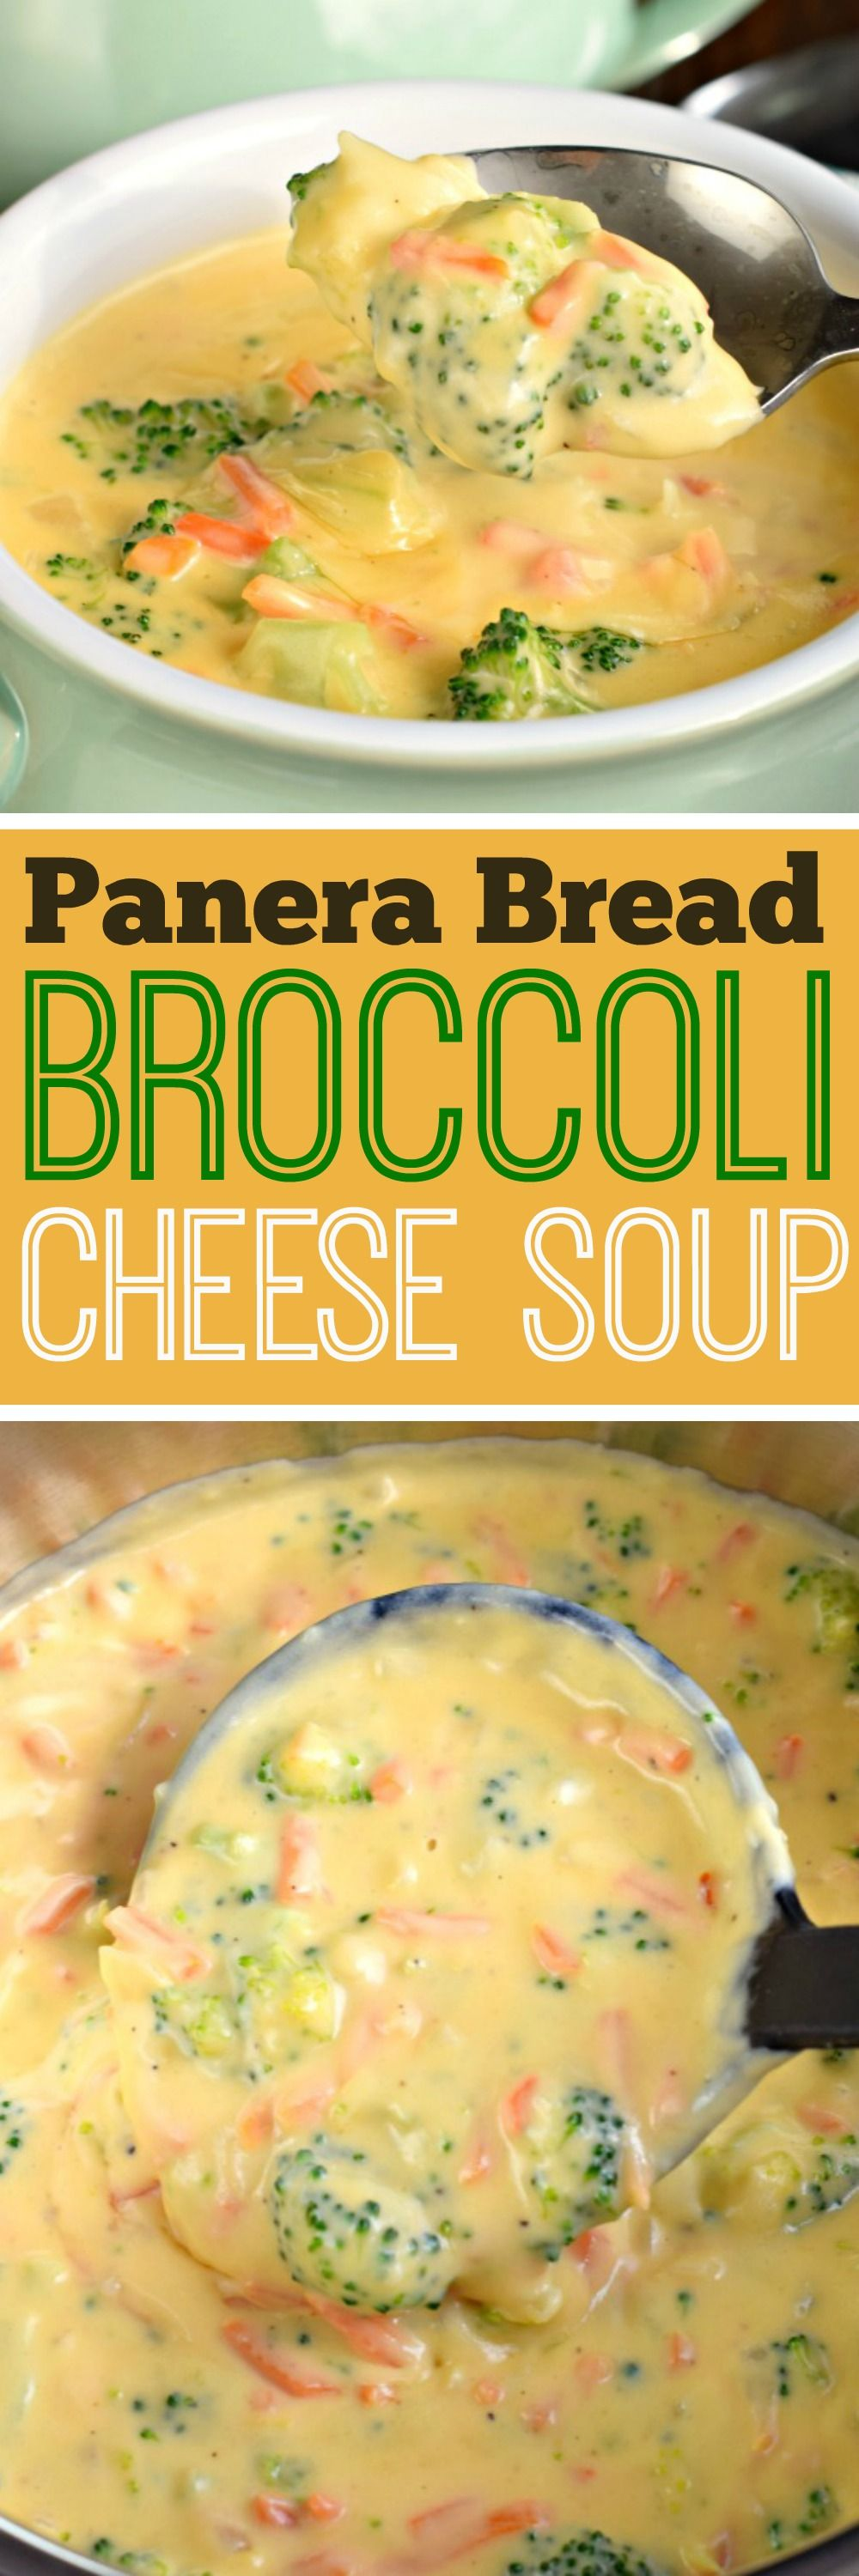 copycat panera broccoli cheese soup is ready in less than 30